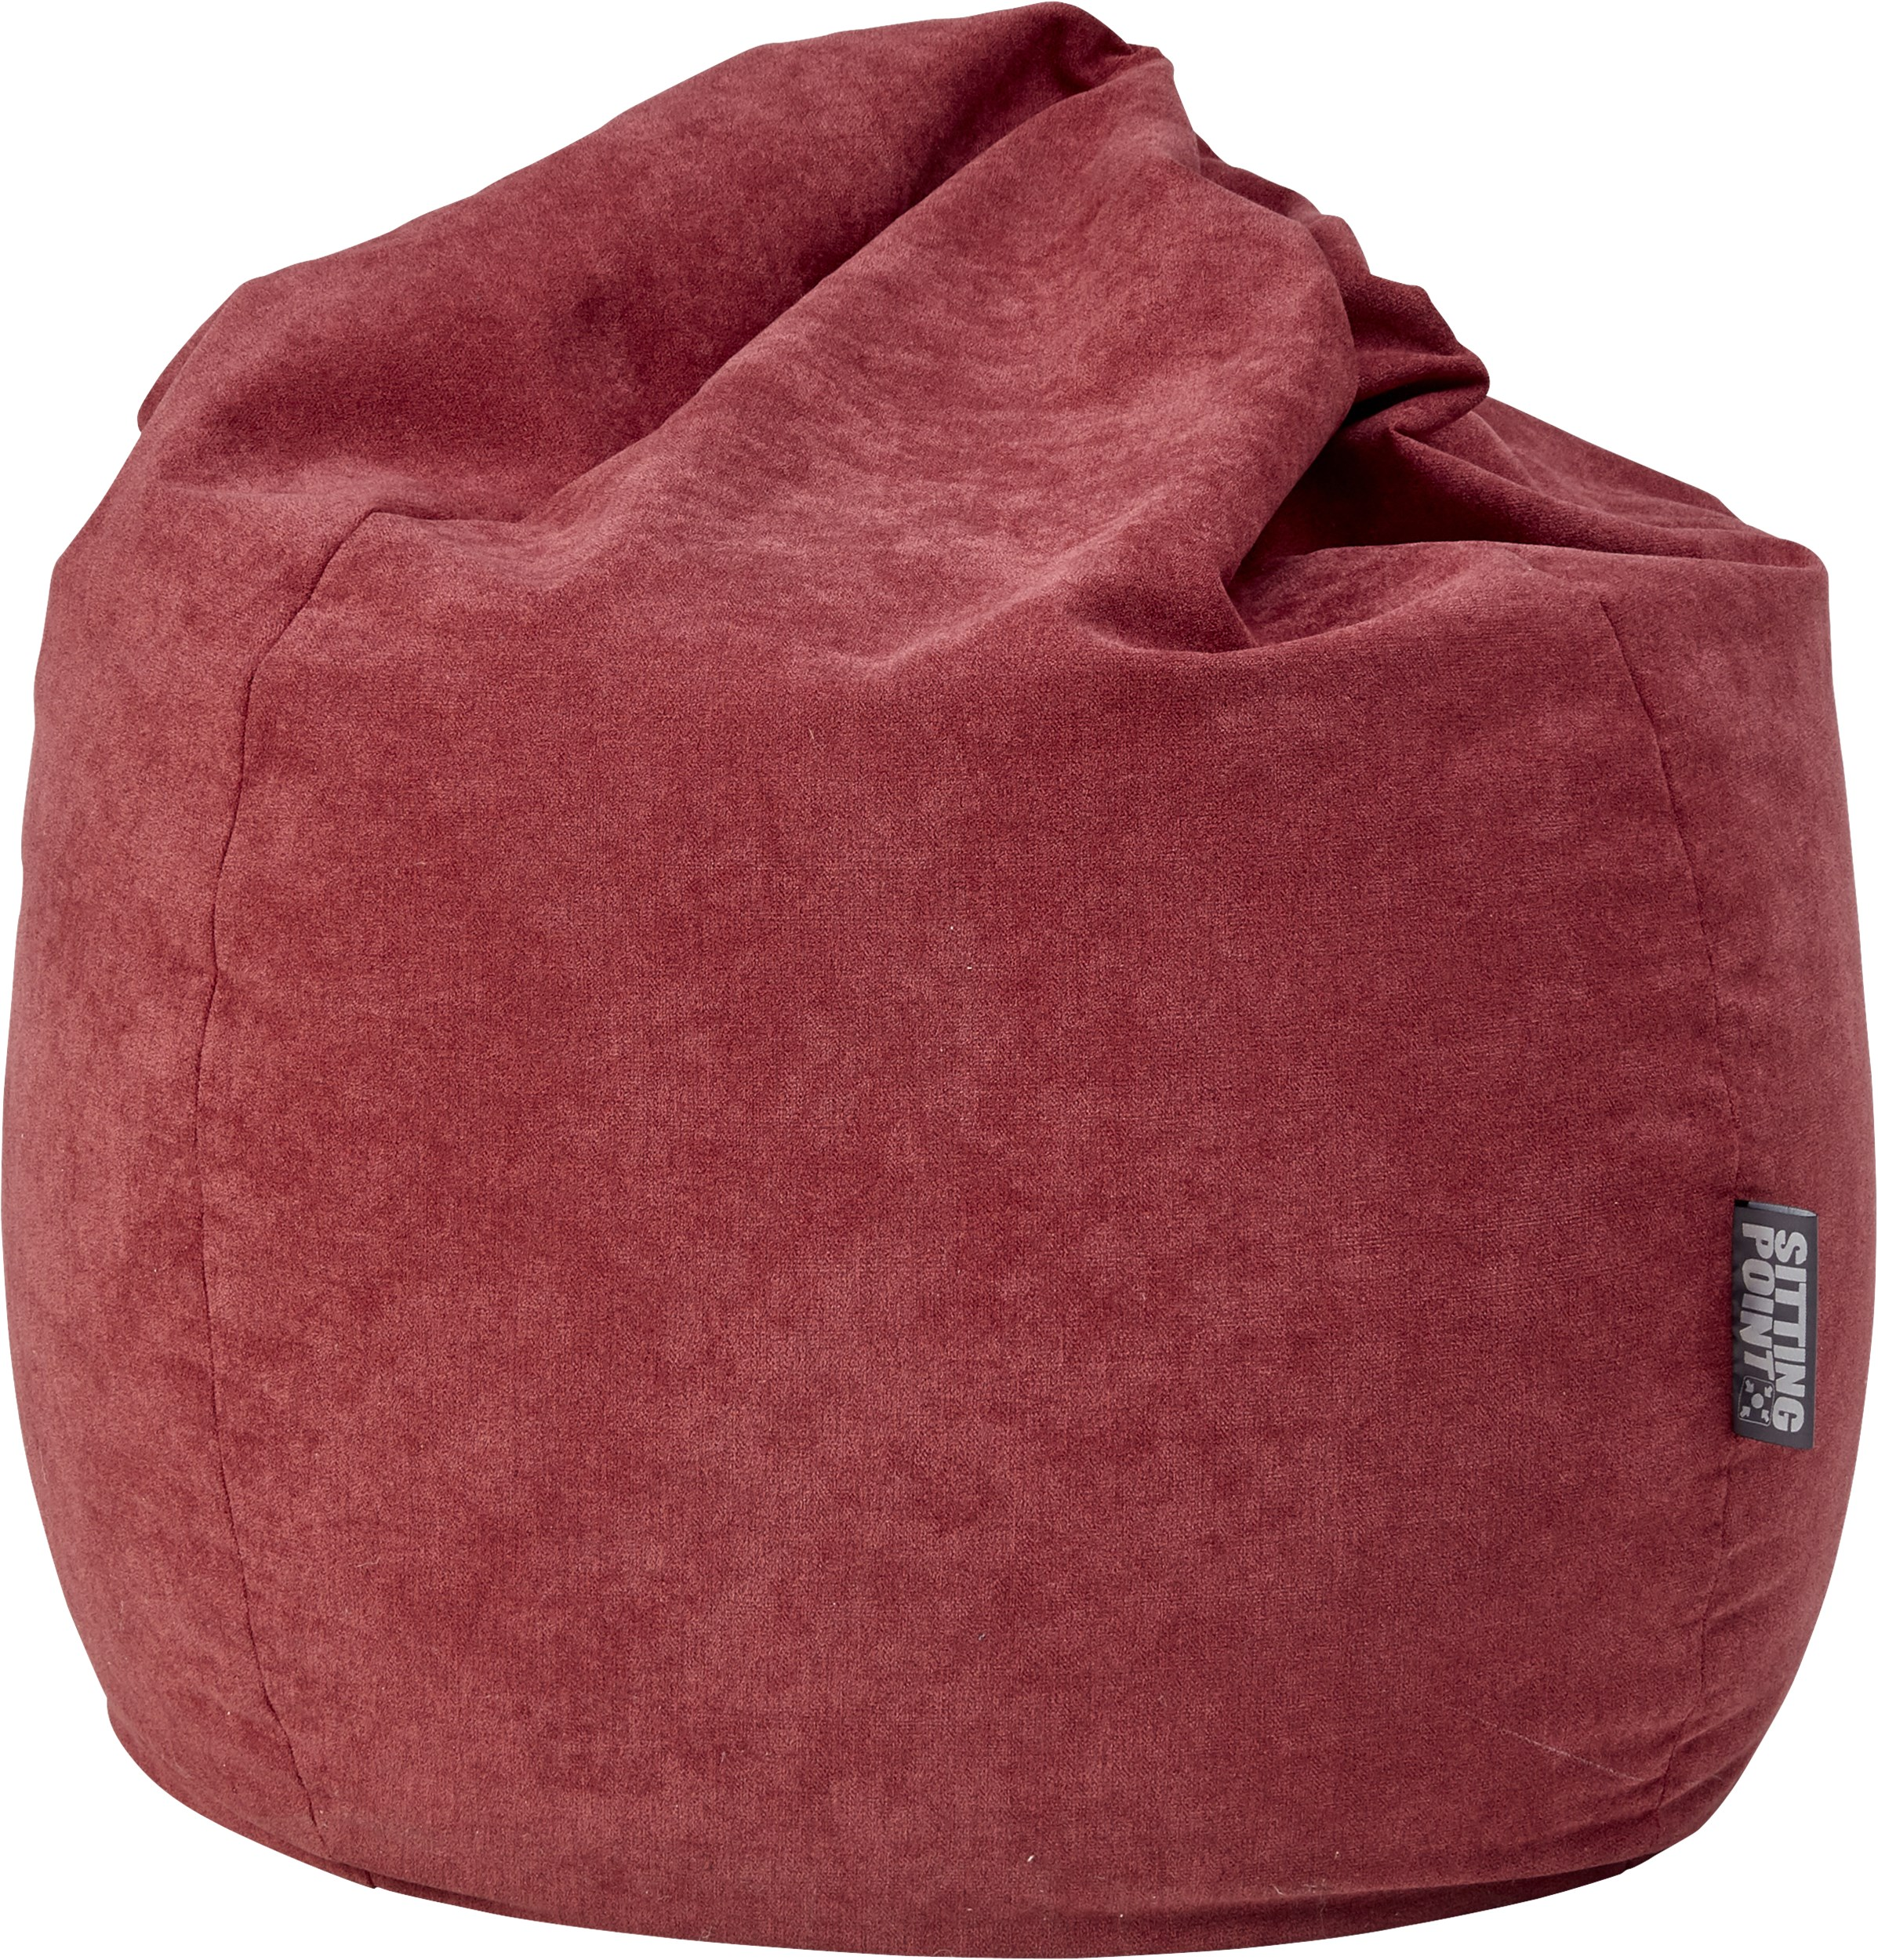 Lumini Sittsäck - Polyestervelour i barn red och 100 % EPS-kulor